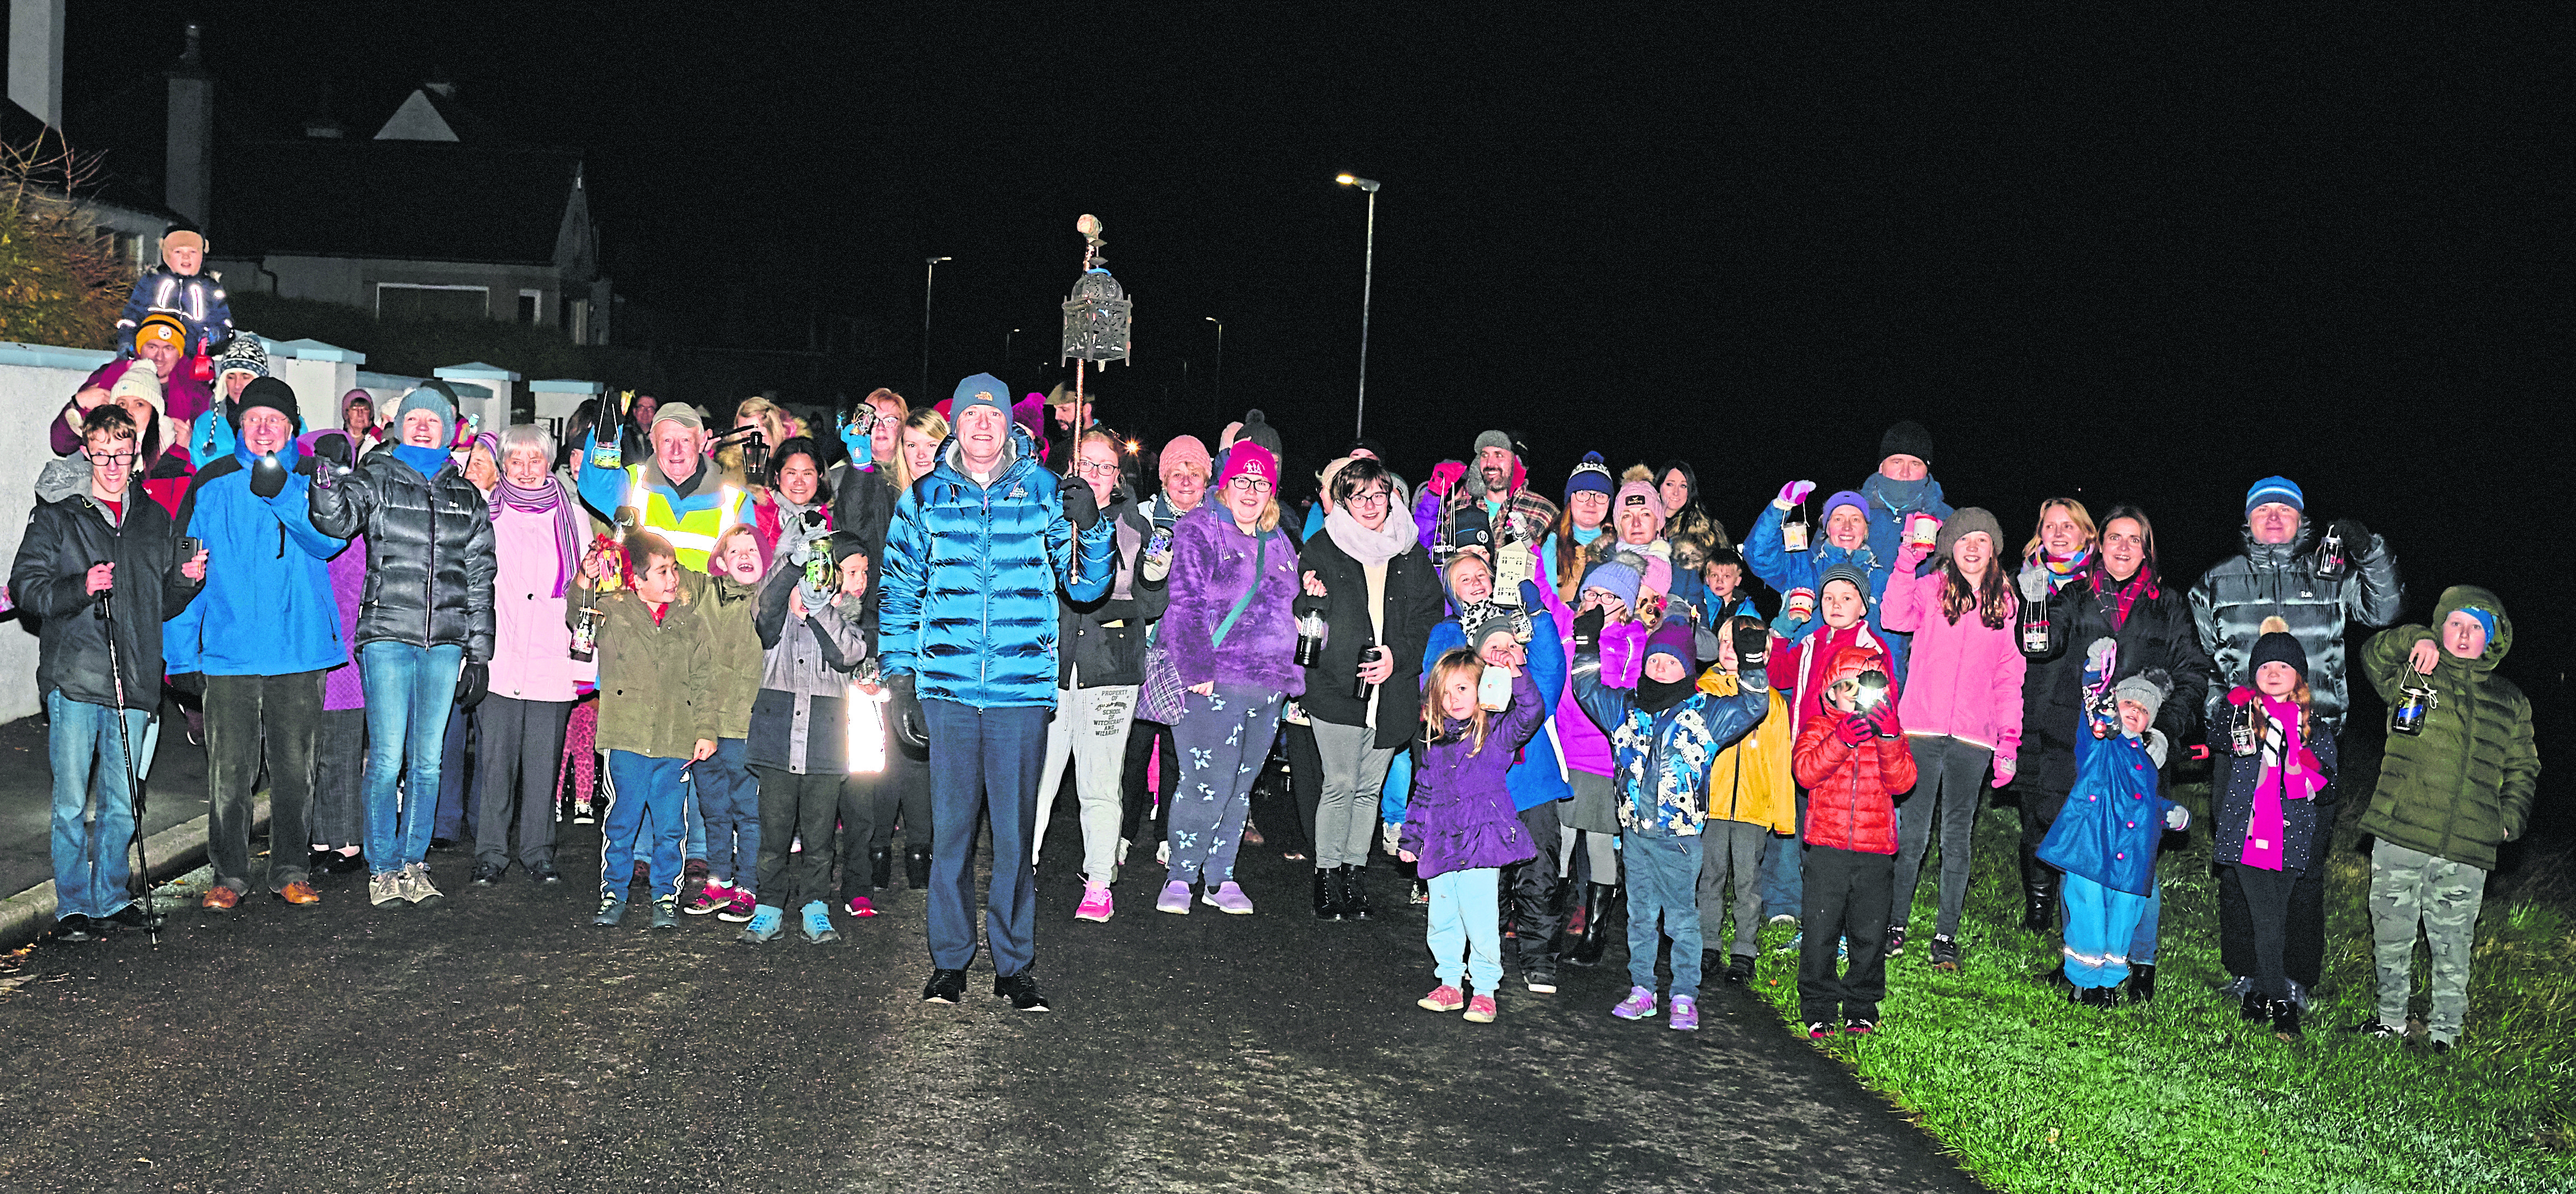 The St Gerardines Lantern Walk as it arrives at St Gerardines Church in Lossiemouth led by Rev Geoff McKee holding aloft his lantern.